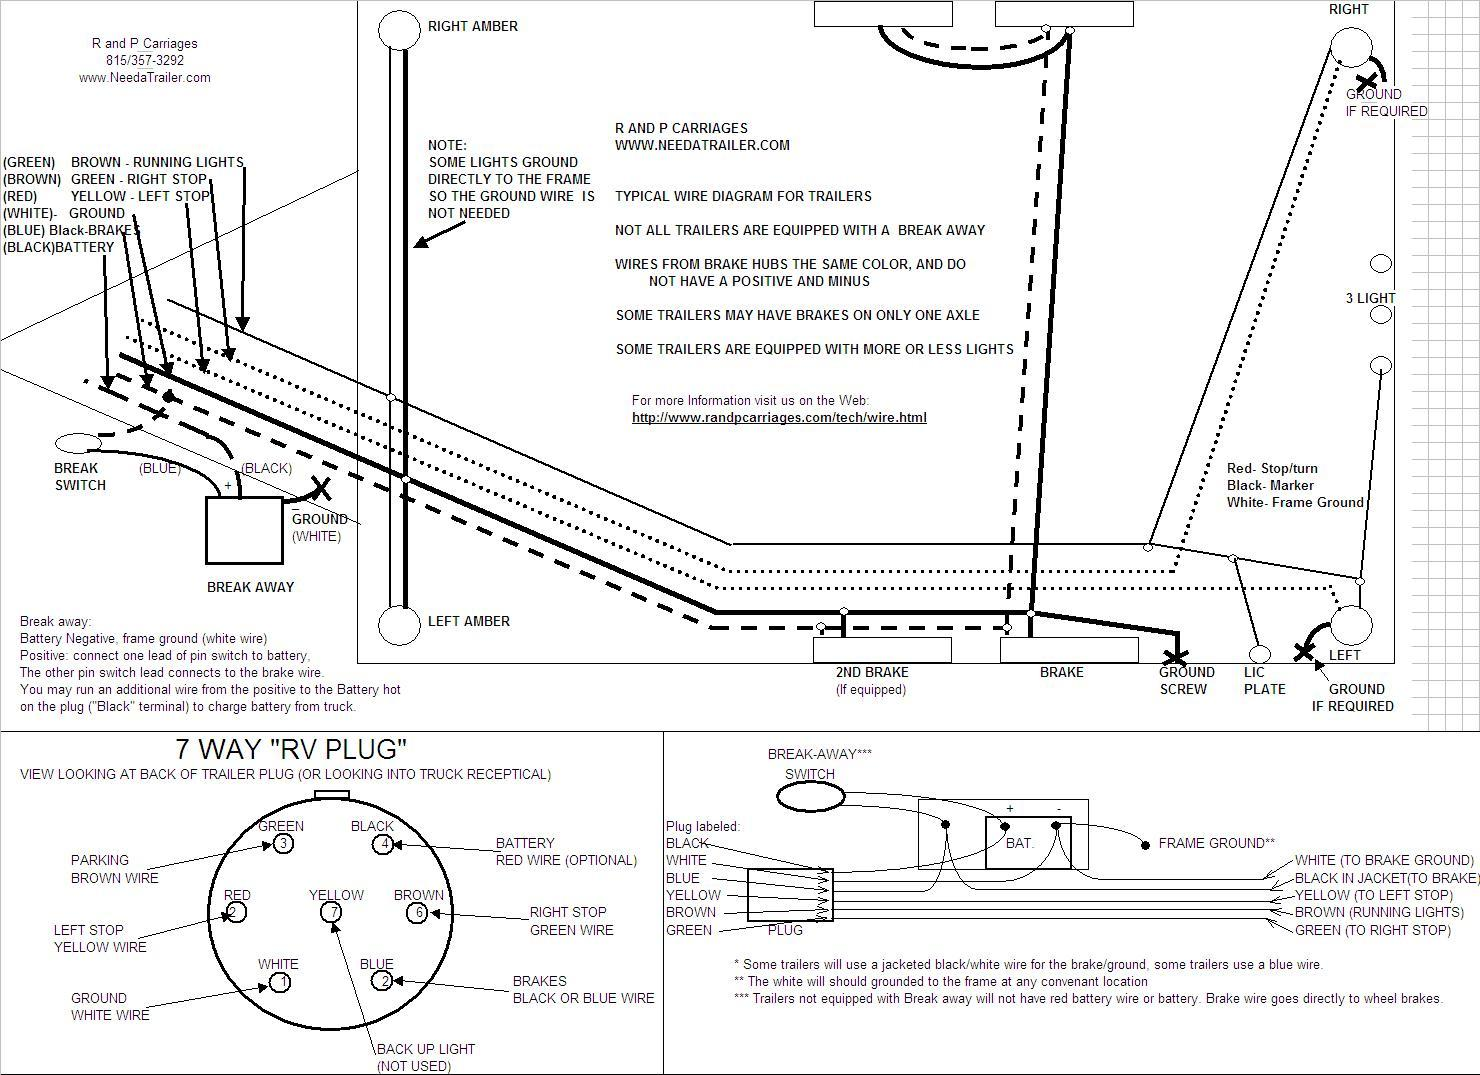 7 way wiring diagram brake controller installation instructions 7 way truck wiring diagram at soozxer.org